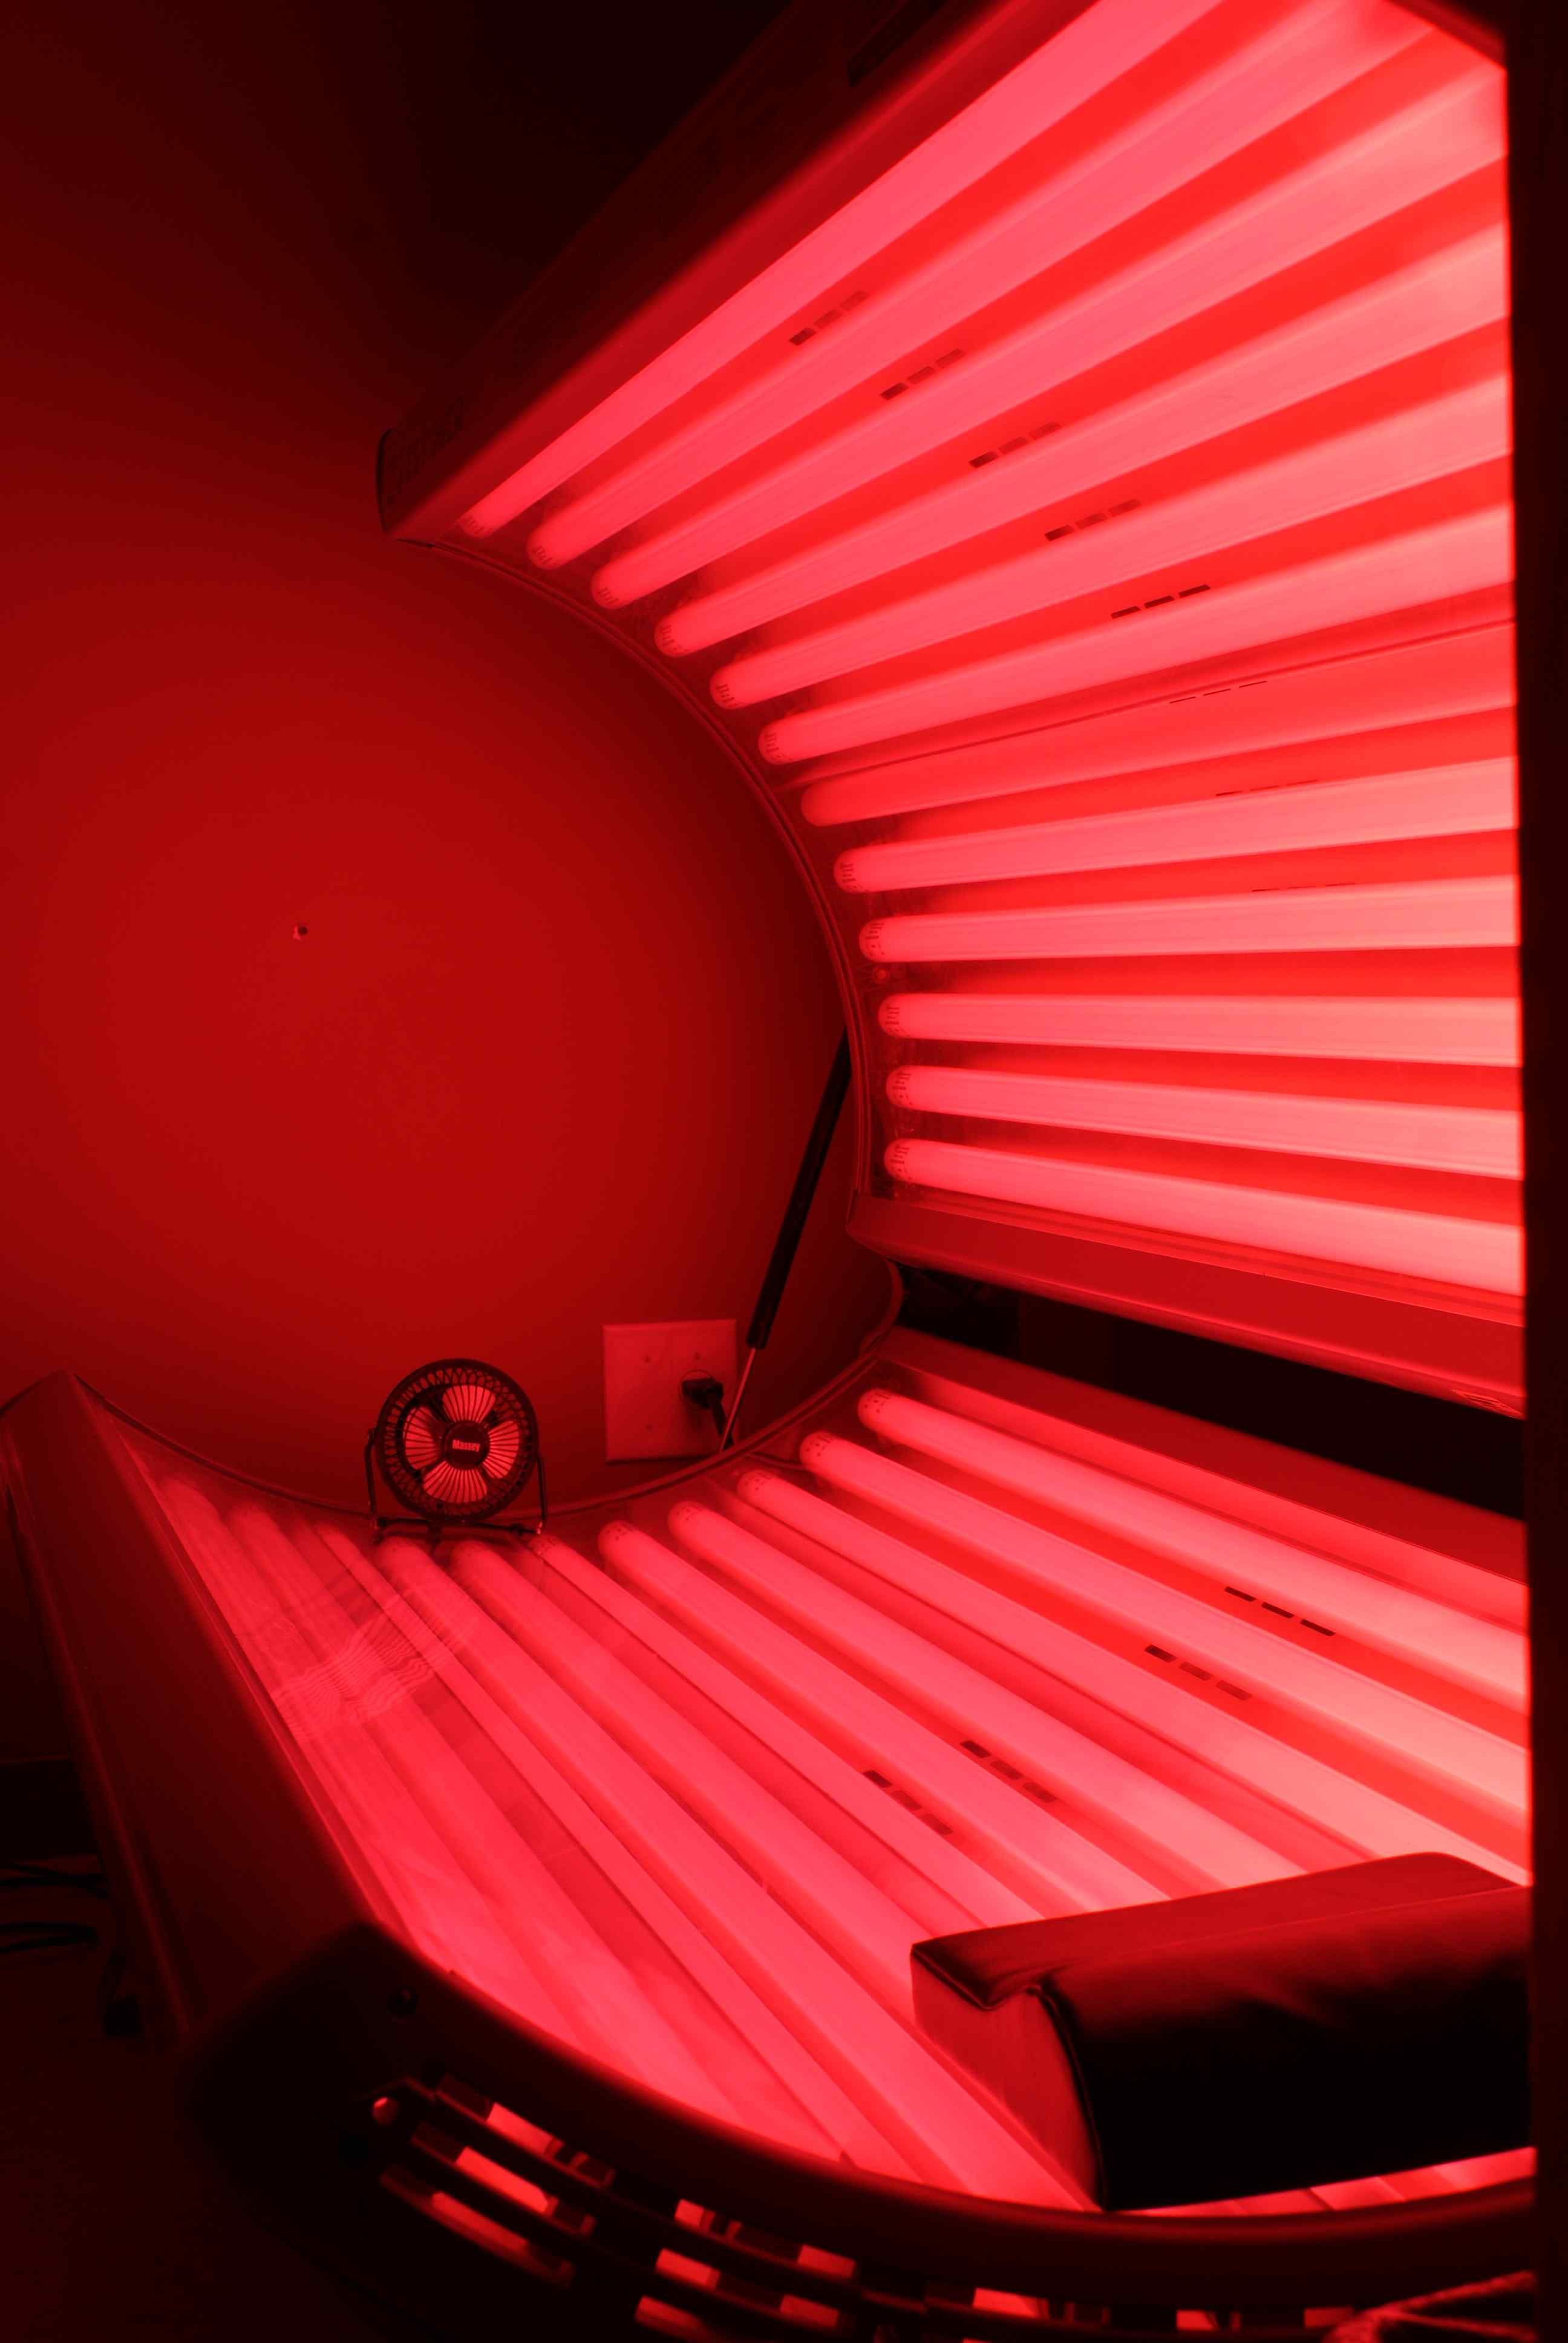 I love getting in this healthy warm bed of red lights that